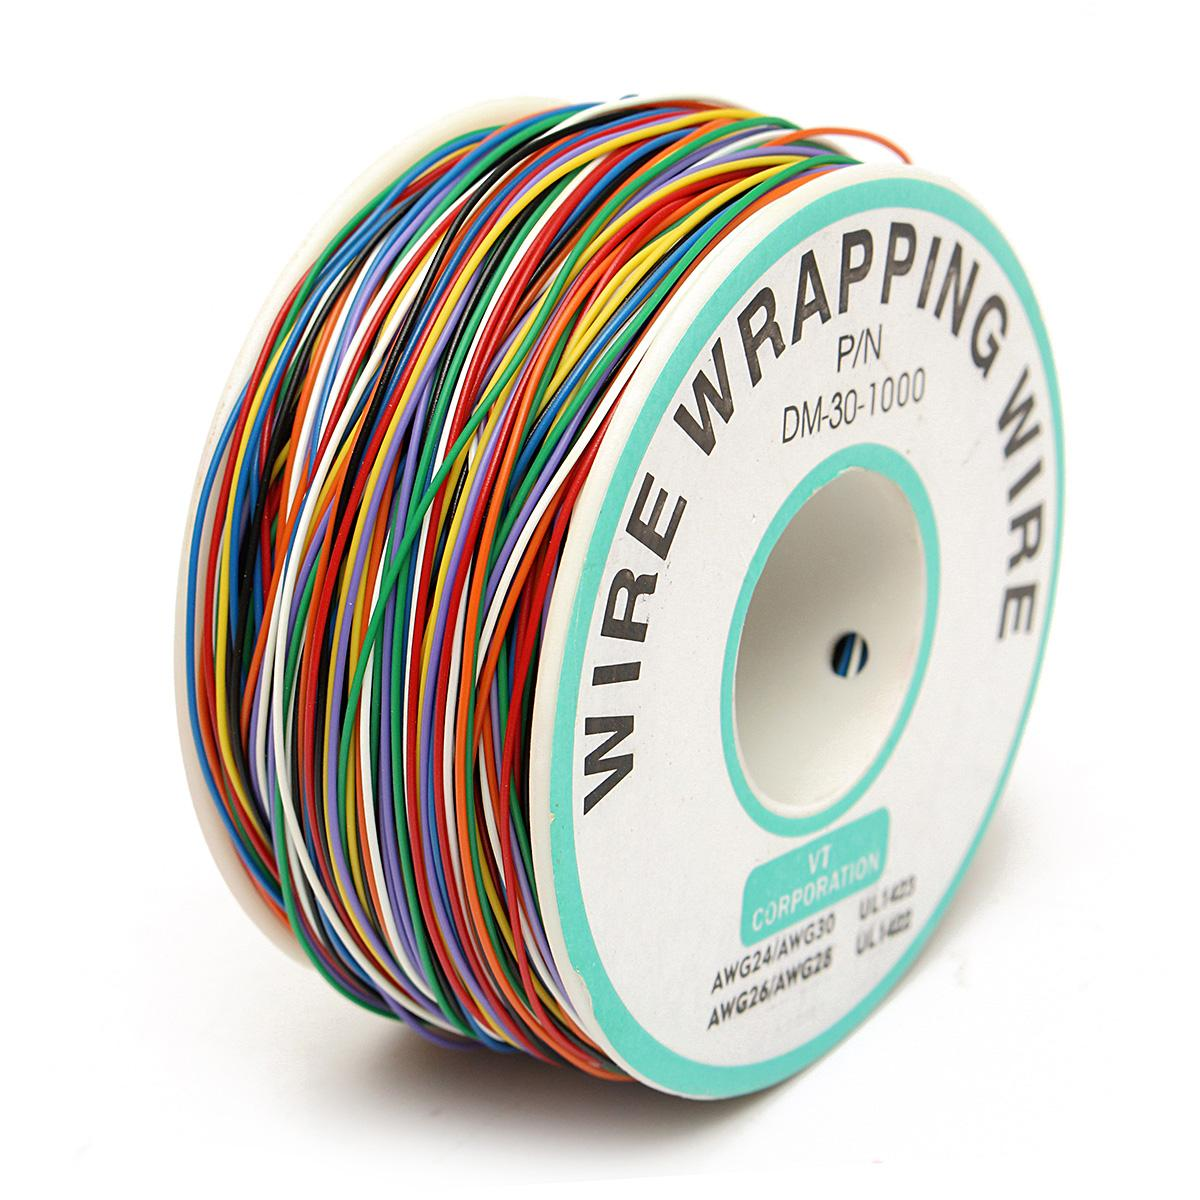 30AWG 0.25mm Electrical Wires Tin Plated Copper Wire Wrapping Insulation Test Cable 8 Colors Wrap Reel30AWG 0.25mm Electrical Wires Tin Plated Copper Wire Wrapping Insulation Test Cable 8 Colors Wrap Reel